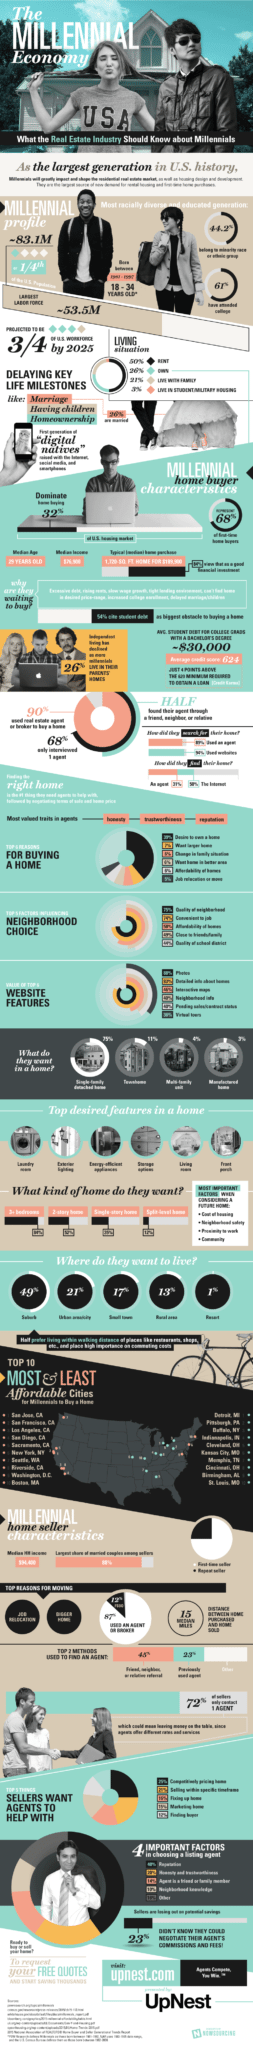 Millennial_Infographic_By_UpNest_FINAL